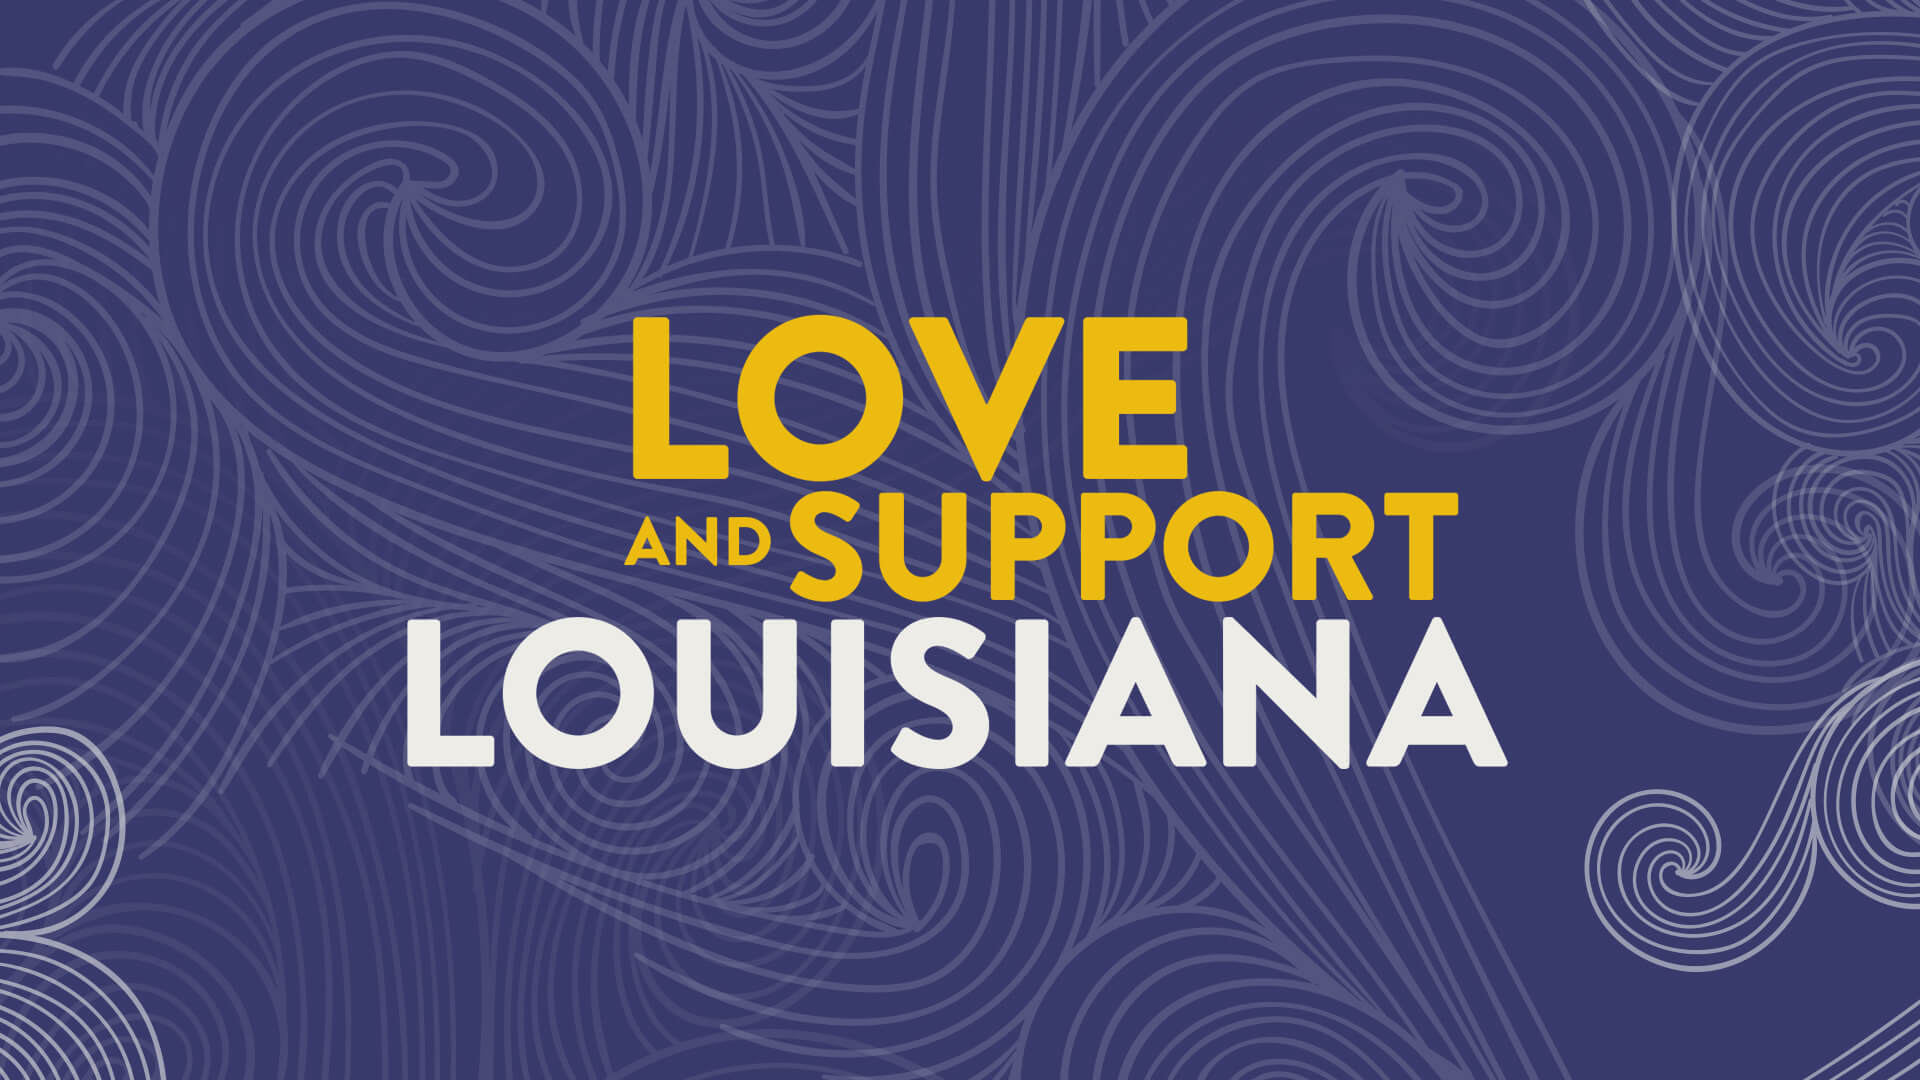 Love and Support Louisiana Image